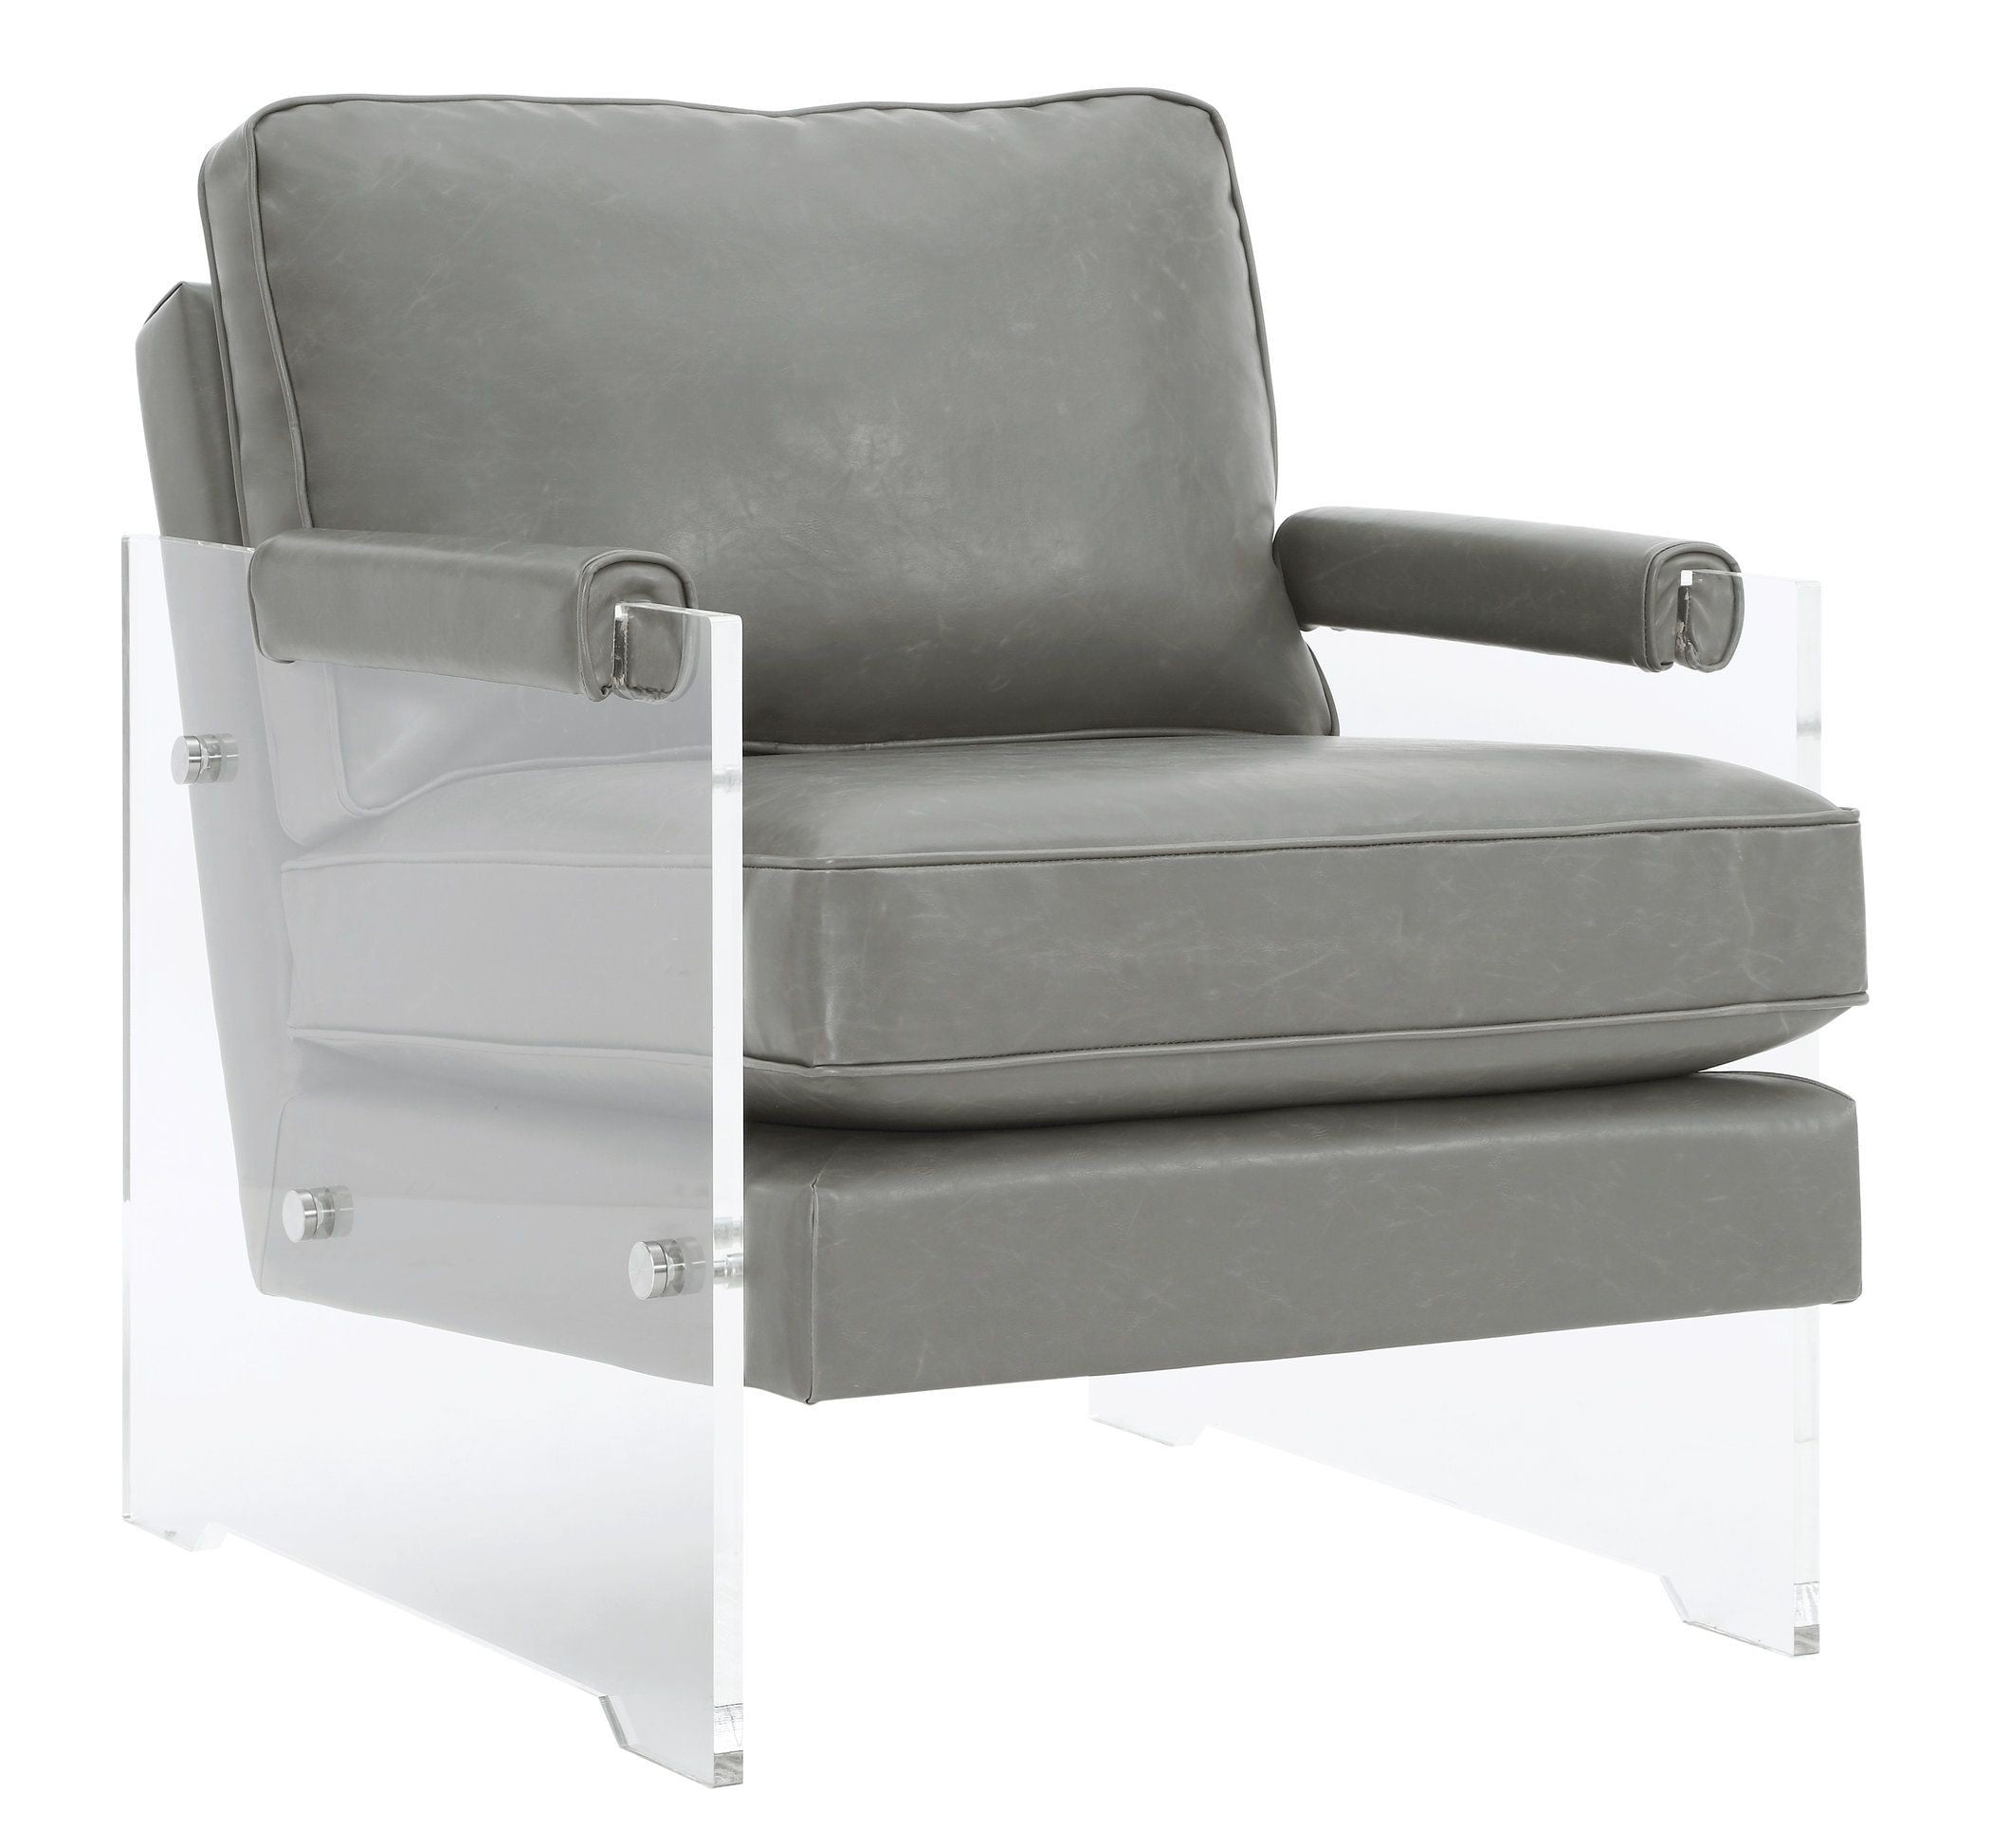 Acrylic Chair Serena Grey Eco Leather And Lucite Chair From Tov